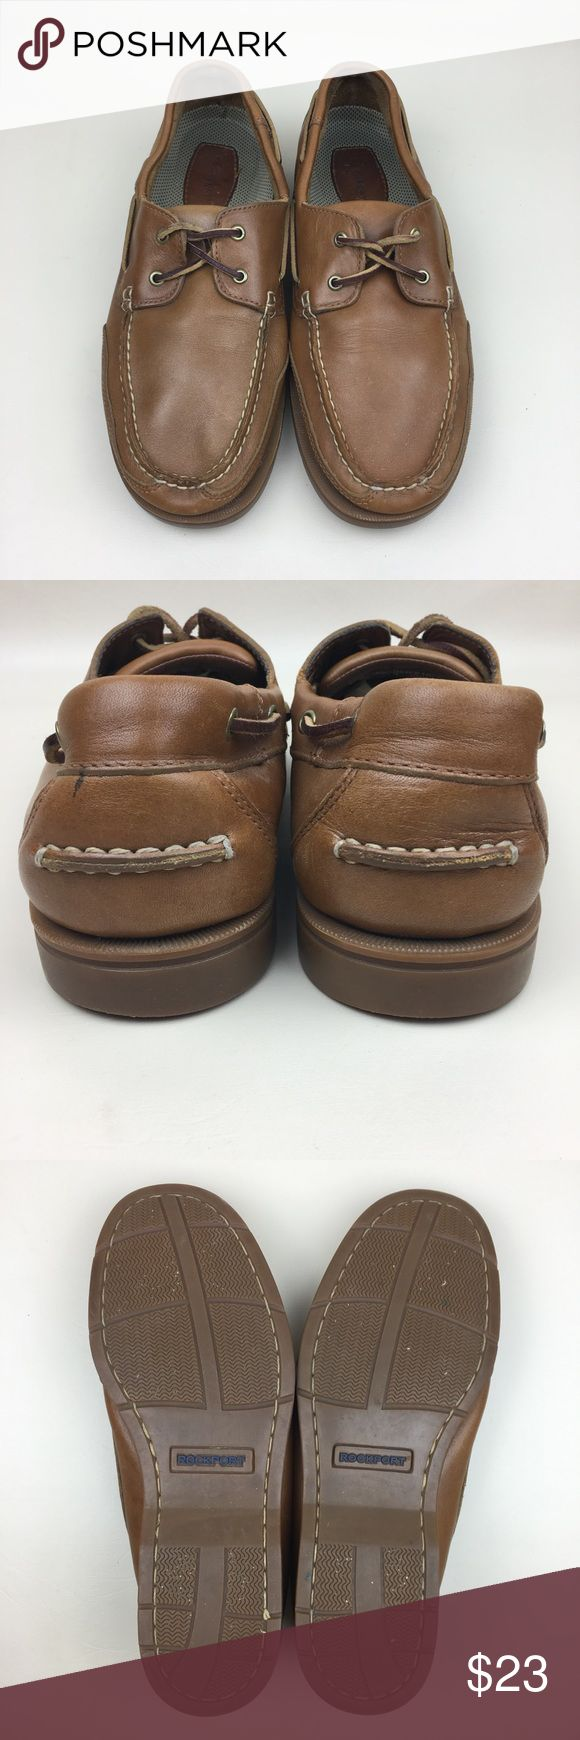 ROCKPORT Men's Leather Boat Shoes Size 10.5 ROCKPORT Men's Leather Boat Shoes Size 10.5. Small spot on the left heel. Some tiny paint speckles on toe box area - white on left shoe, red on right shoe (see photos) - very subtle until up very close. Rockport Shoes Boat Shoes